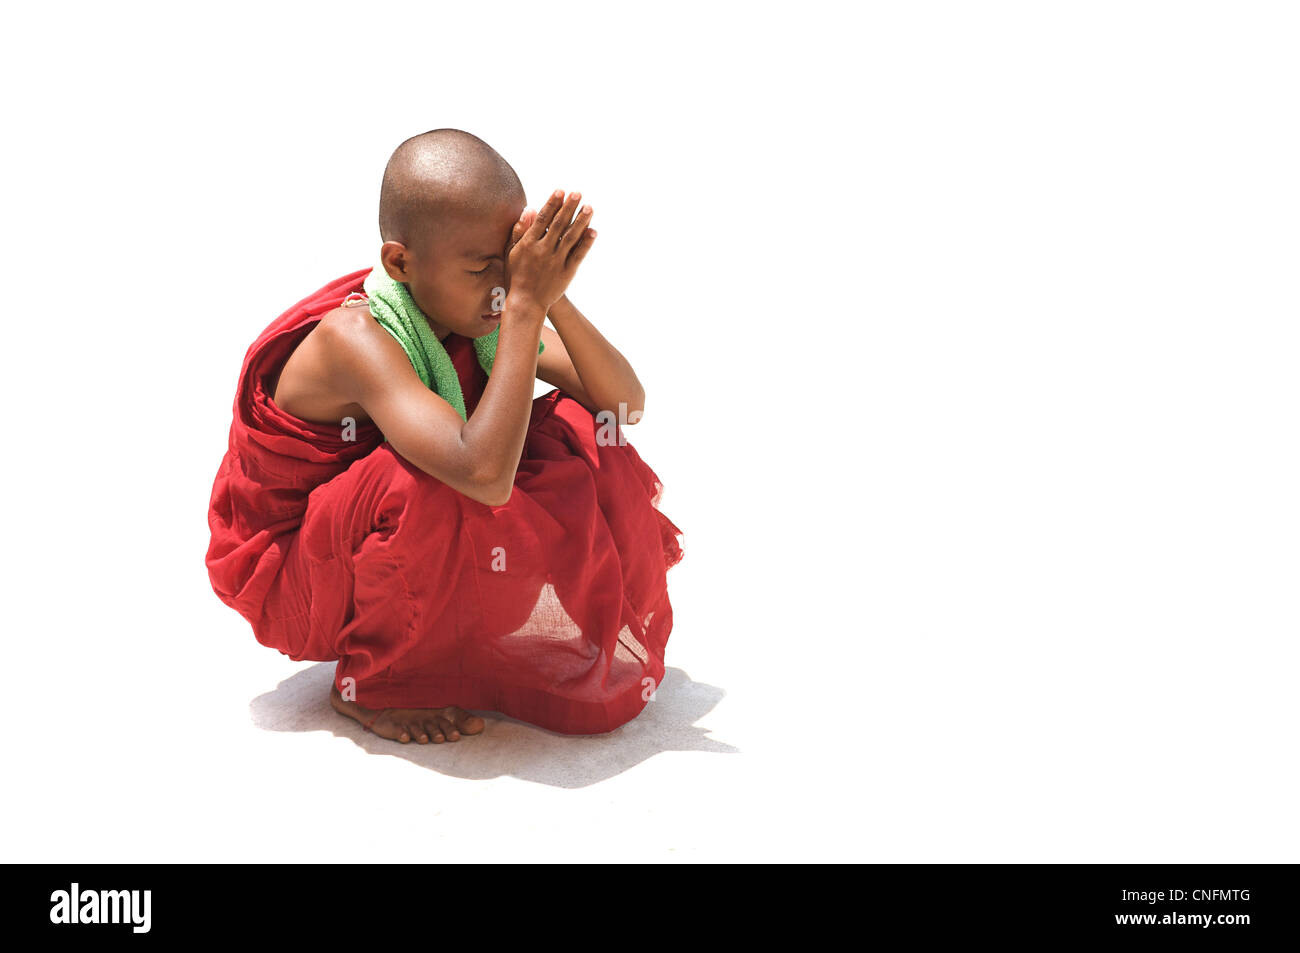 Young buddhist novice monk praying, Shwedagon Pagoda, Rangoon, Burma. Myanmar. White background - Stock Image